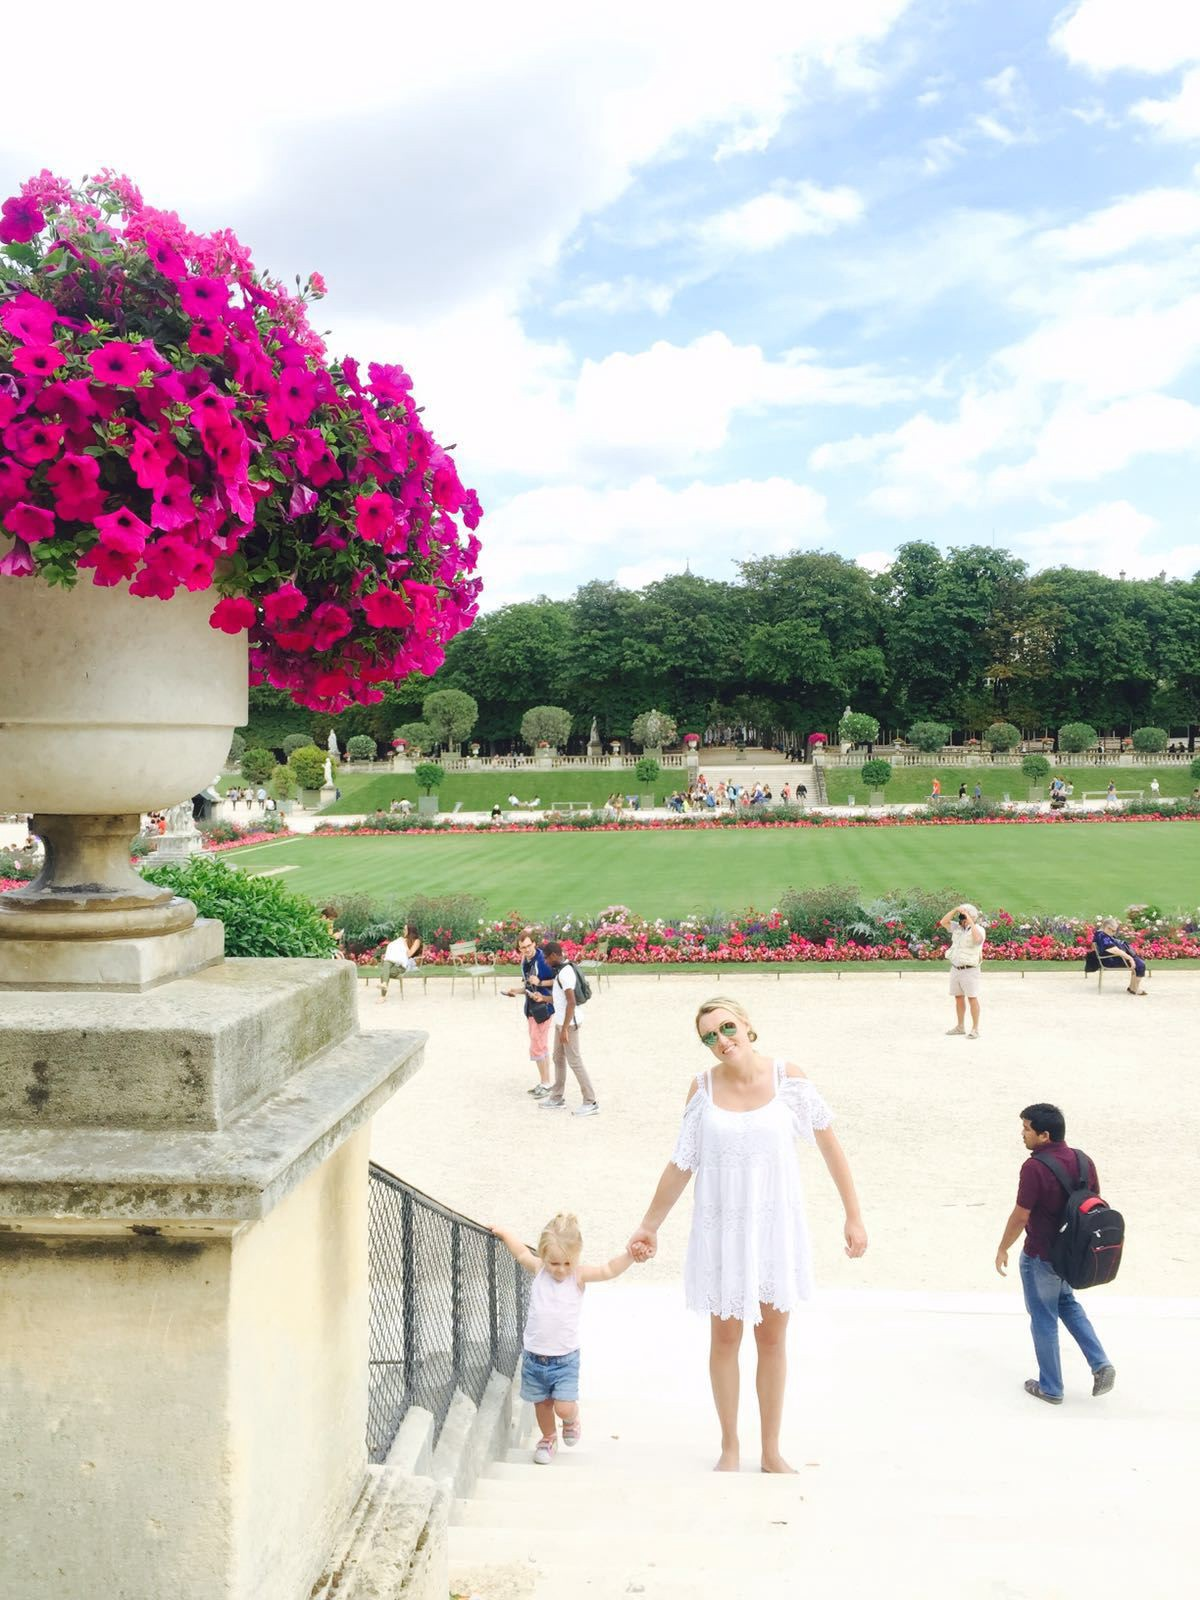 Paris with a toddler – Pearlshare